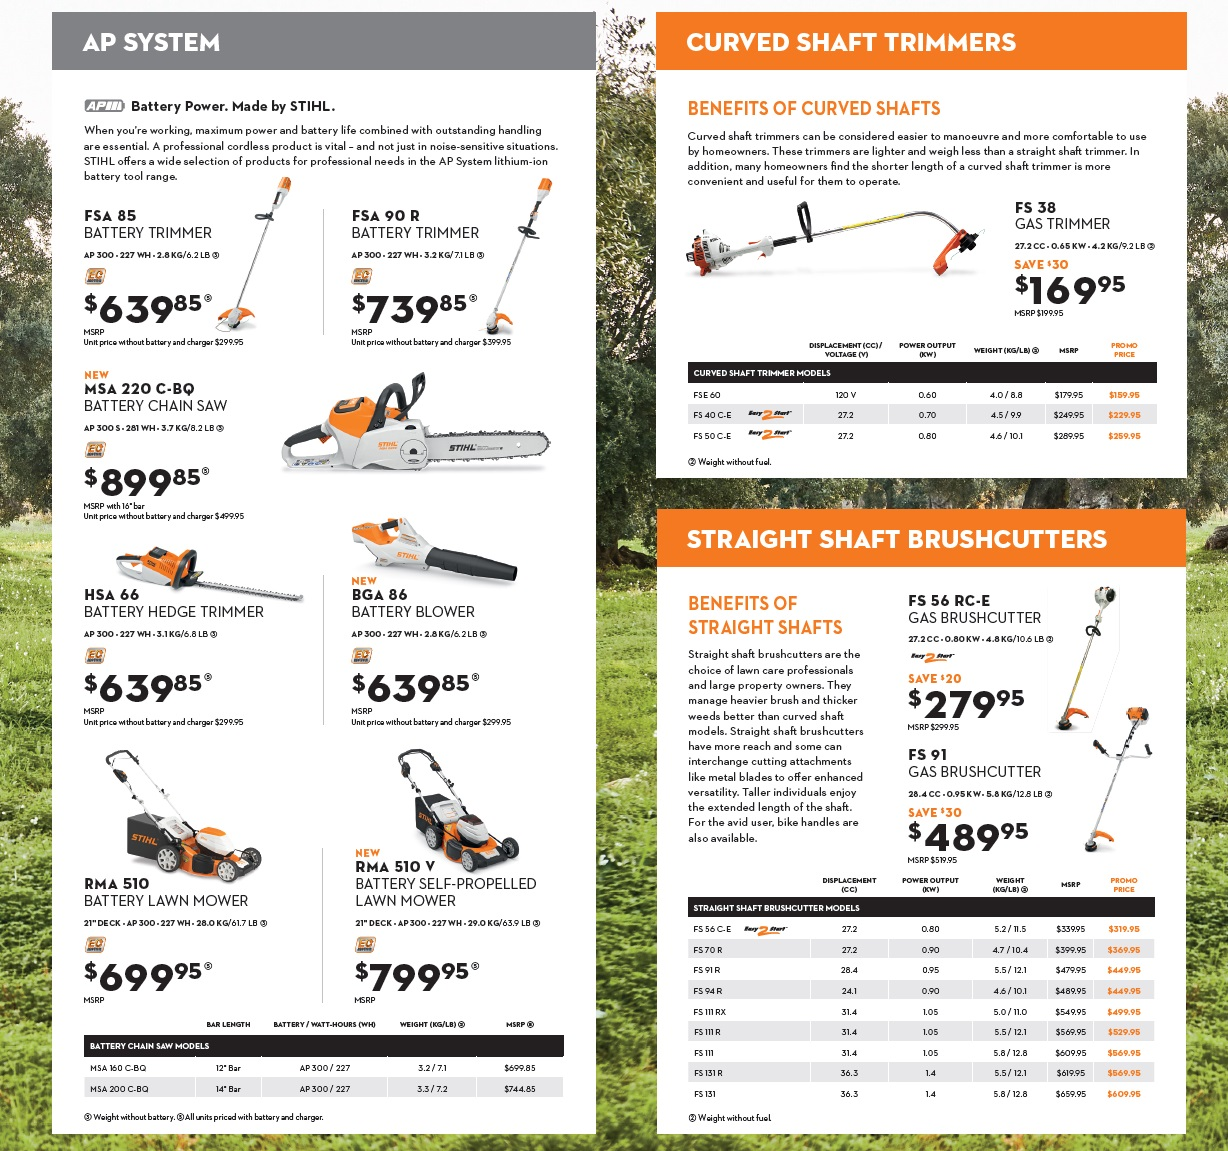 Stihl Trimmers and Brushcutters, Harrow, On